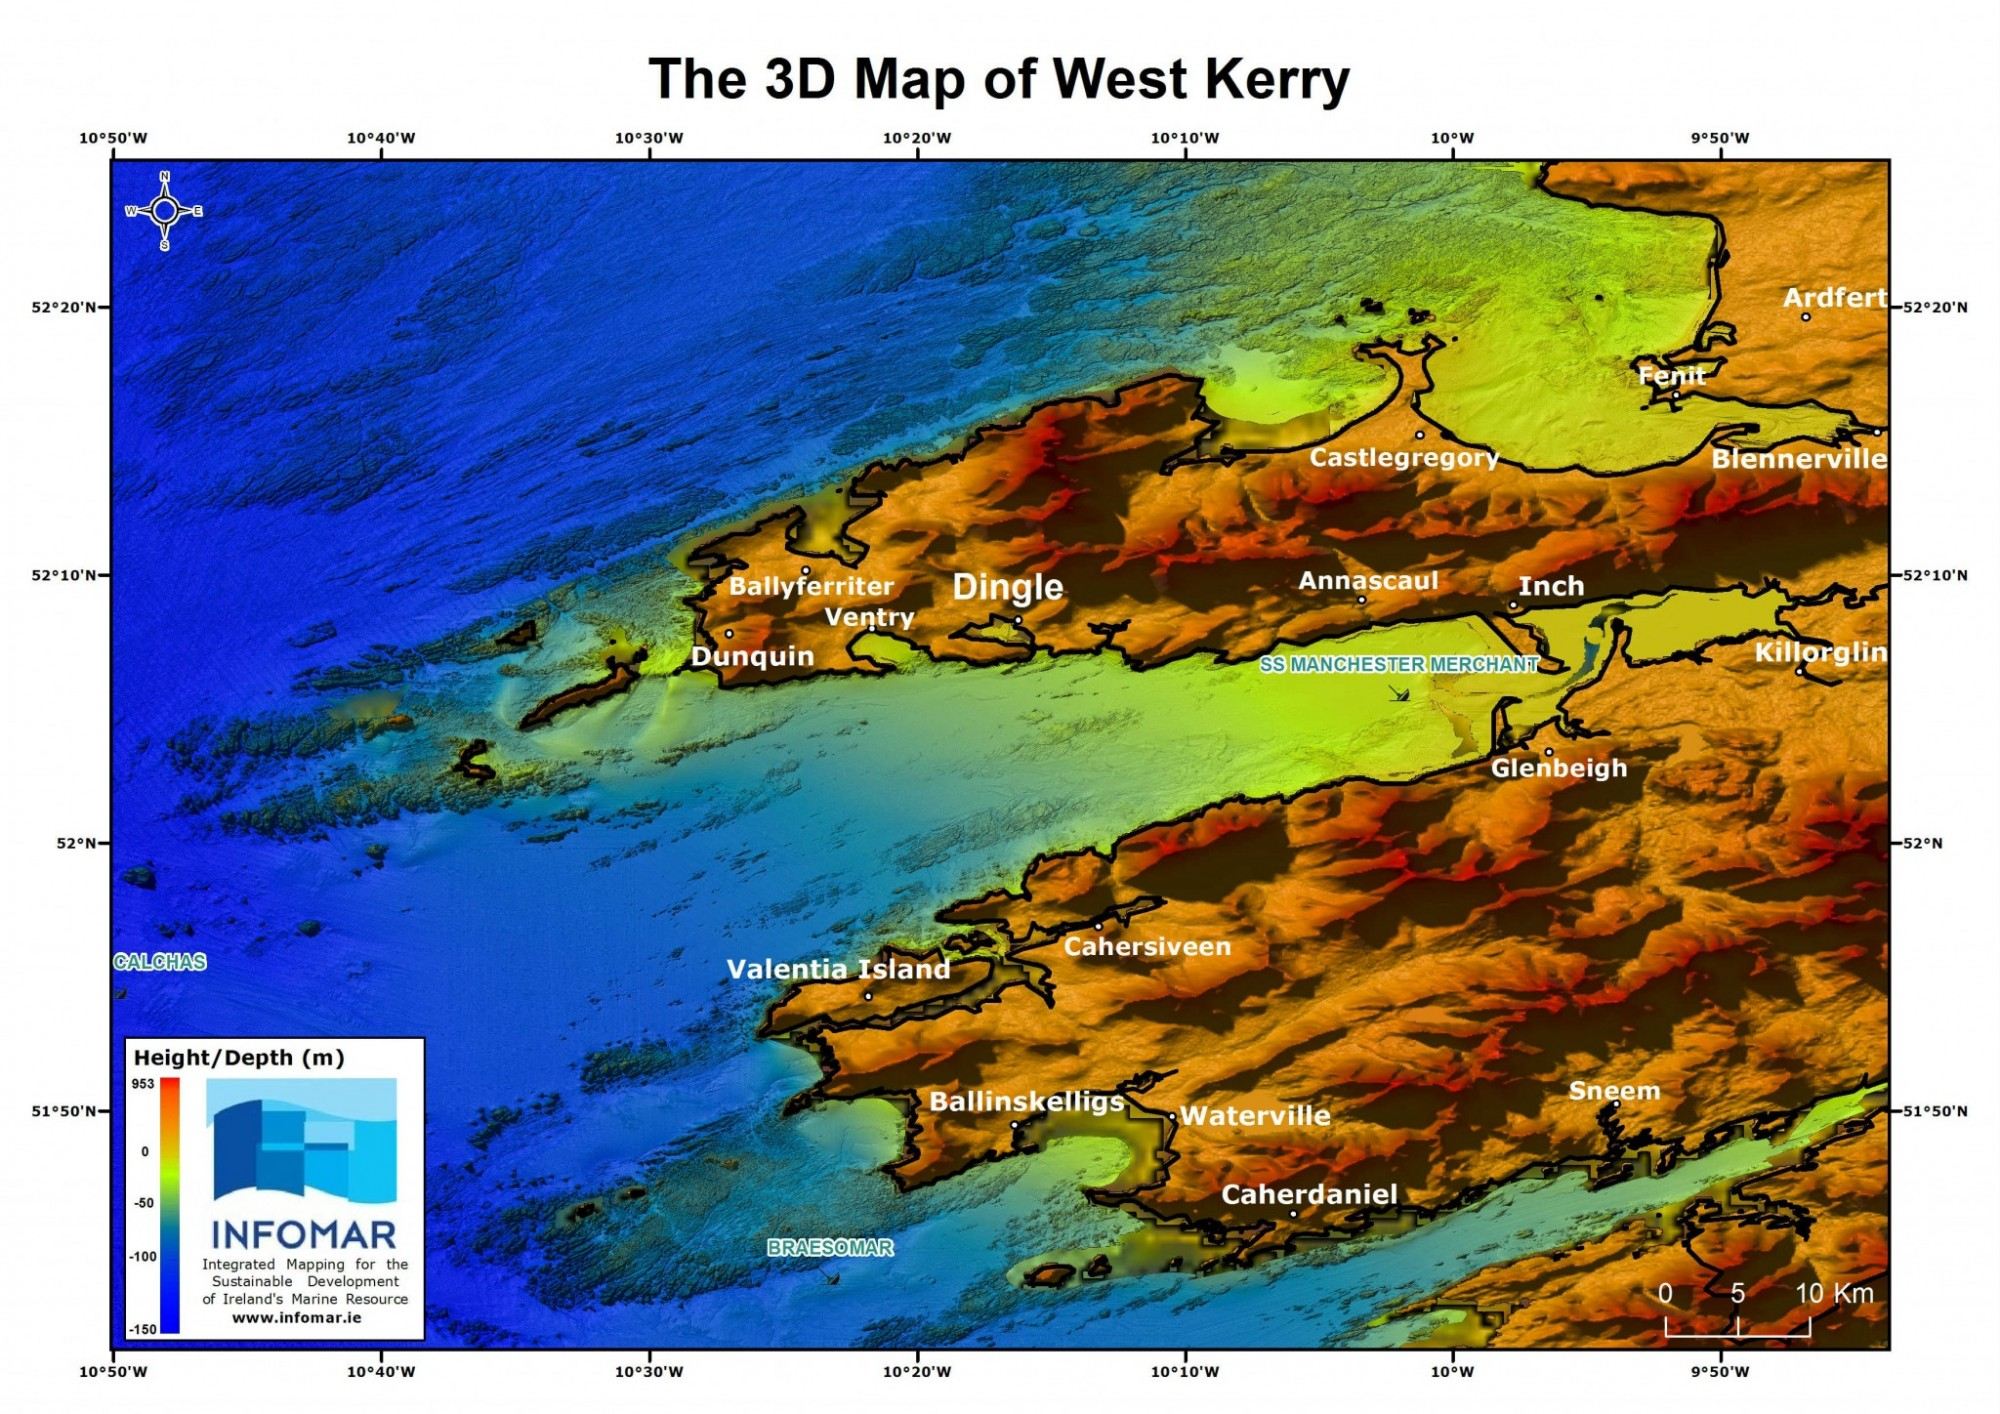 3D_Map_West_Kerry_A4xx